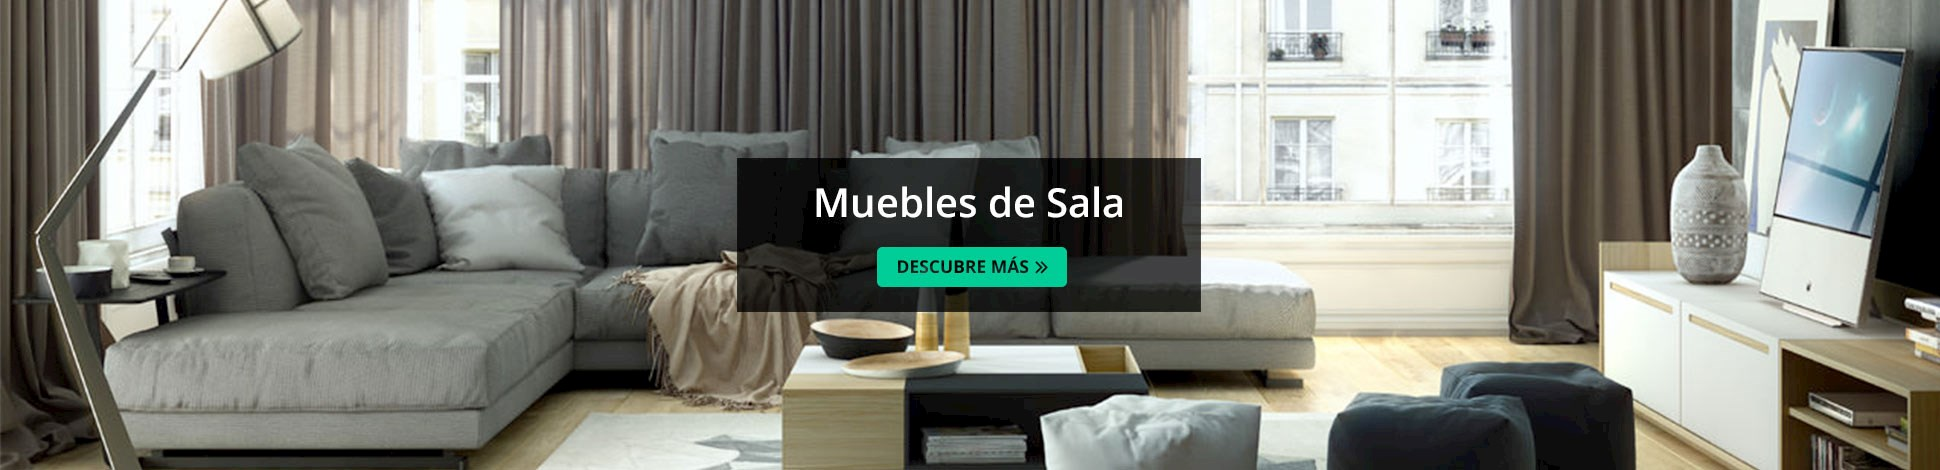 Decoraciones Bonno Muebles De Melanina Cortinas Alfombras Juntoz # Muebles Reacondicionados